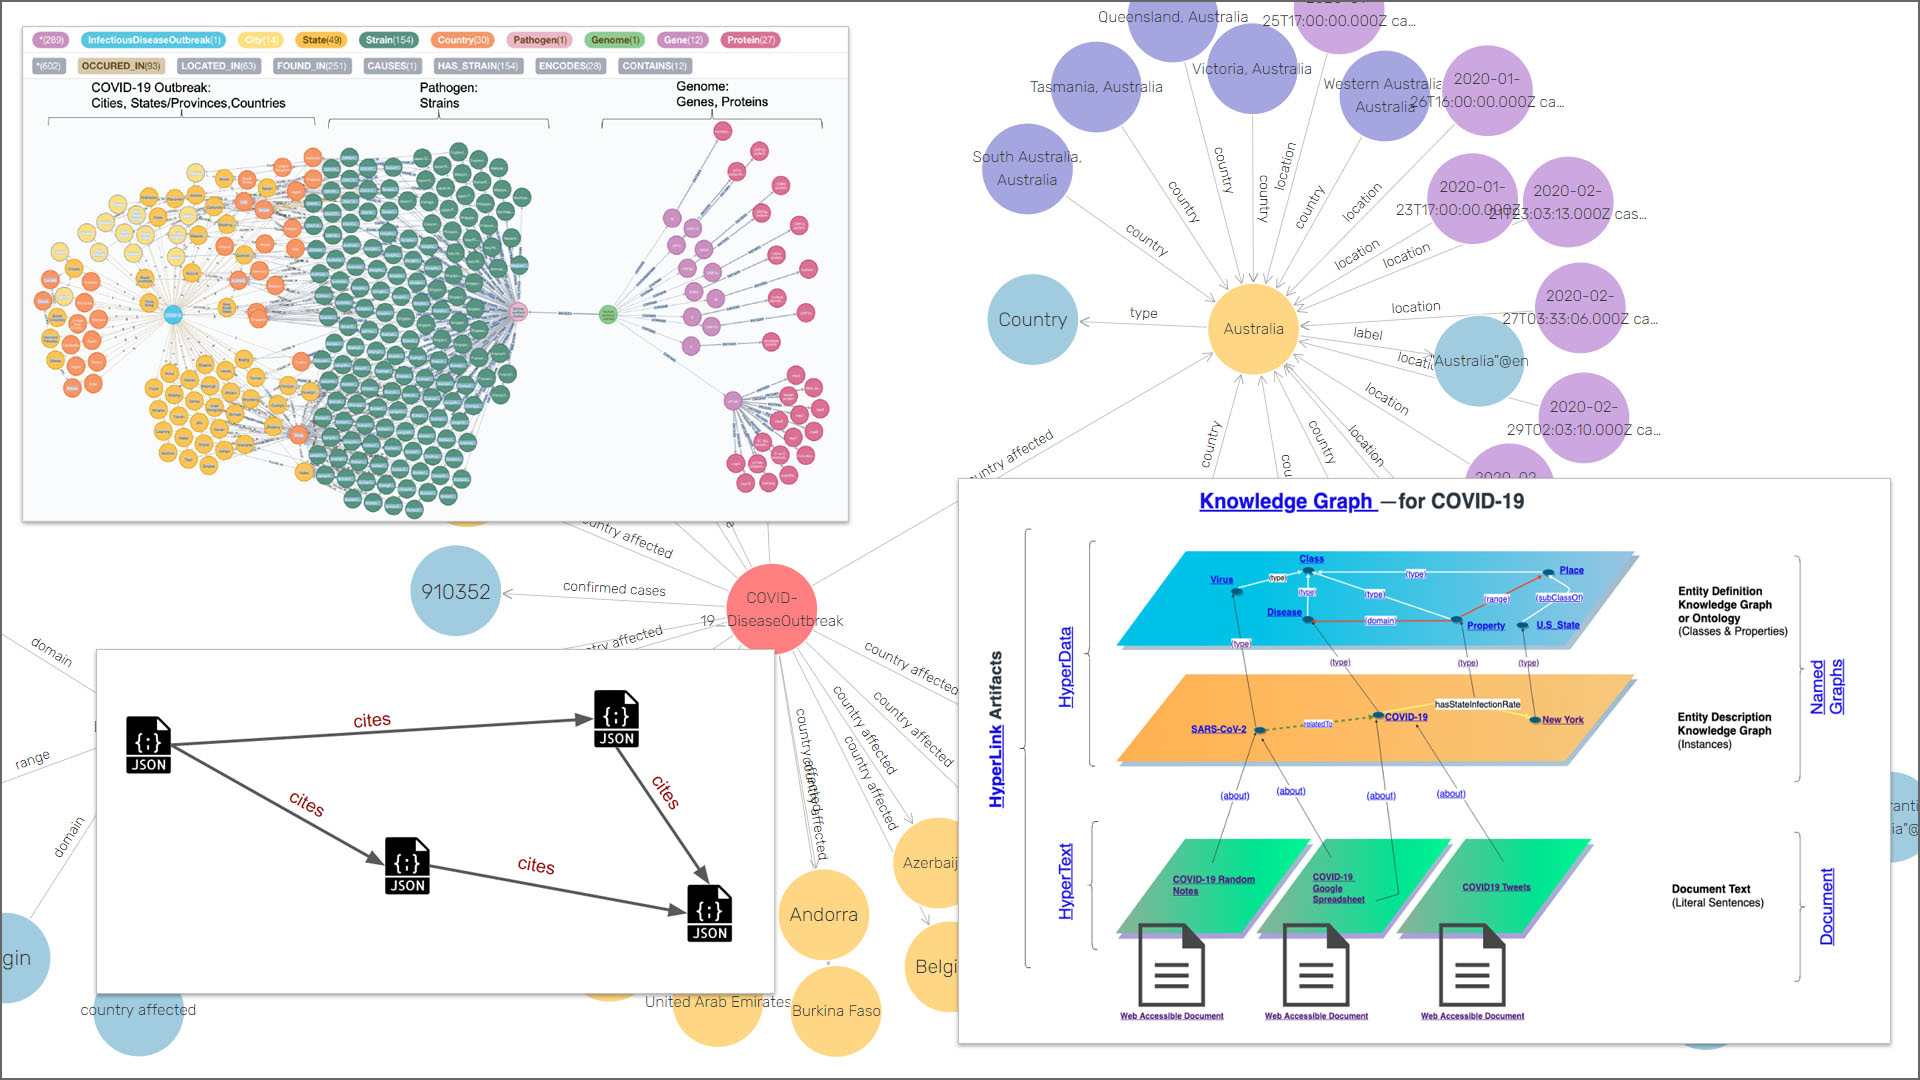 Knowledge graphs in the fight against COVID-19